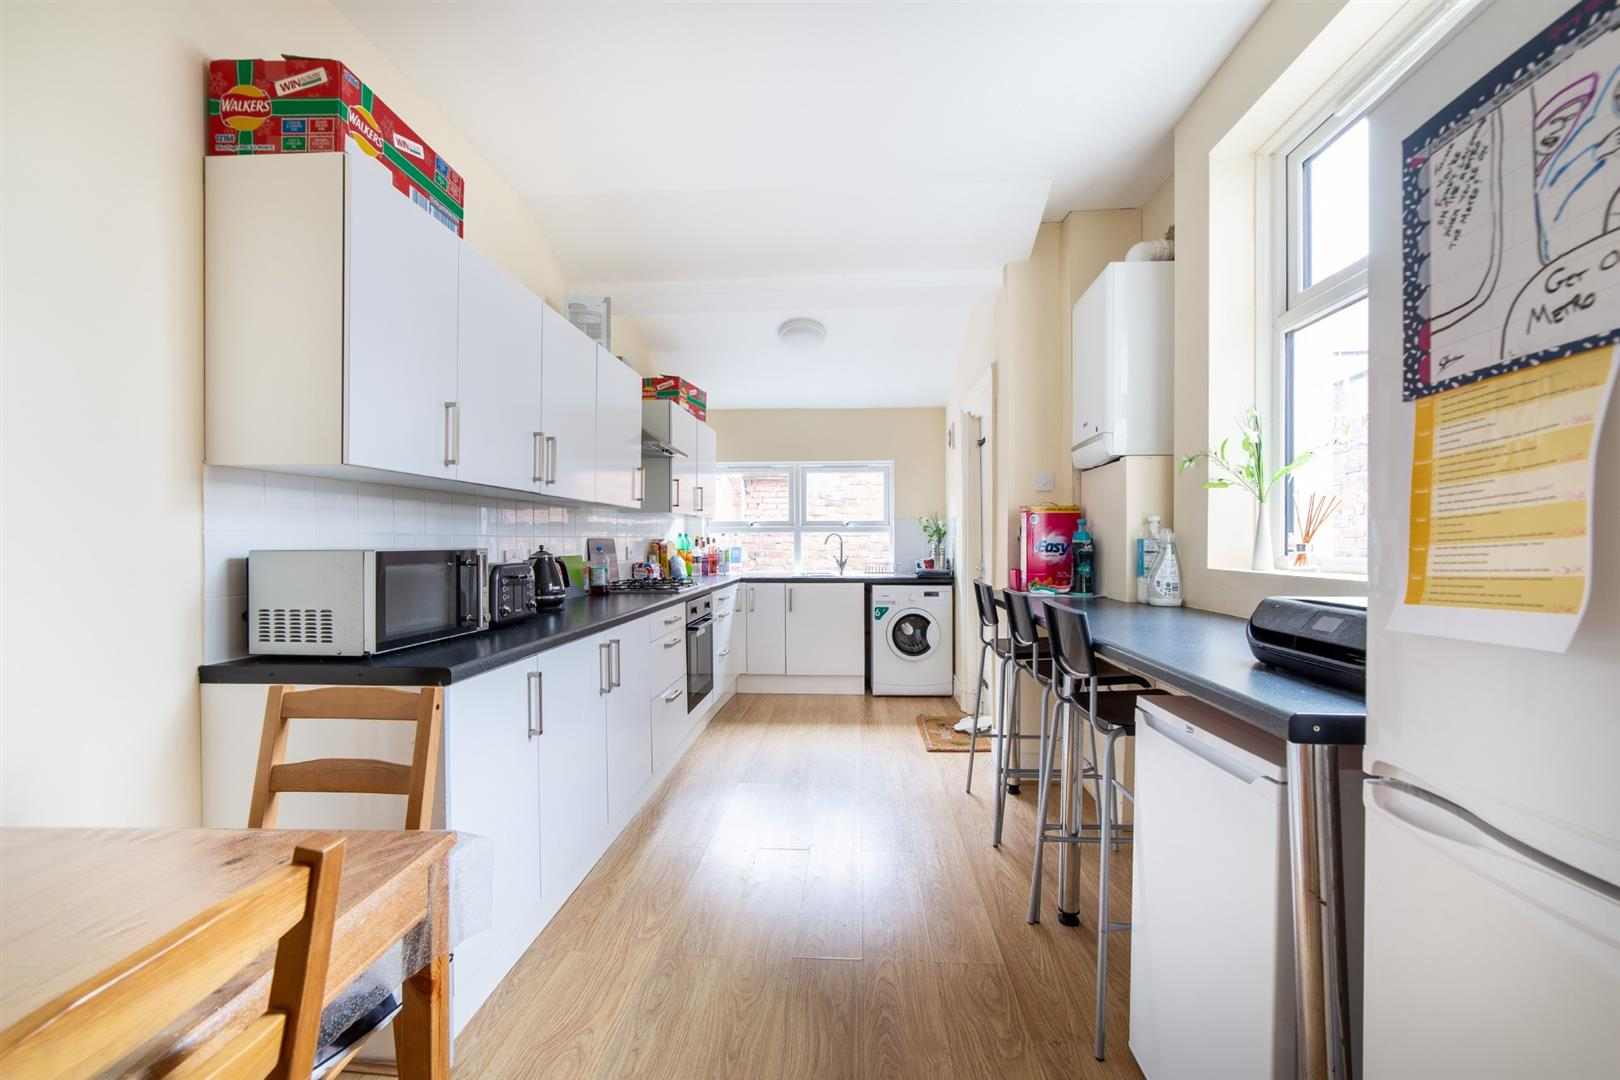 4 bed terraced house for sale in Newcastle Upon Tyne, NE6 5HS  - Property Image 8